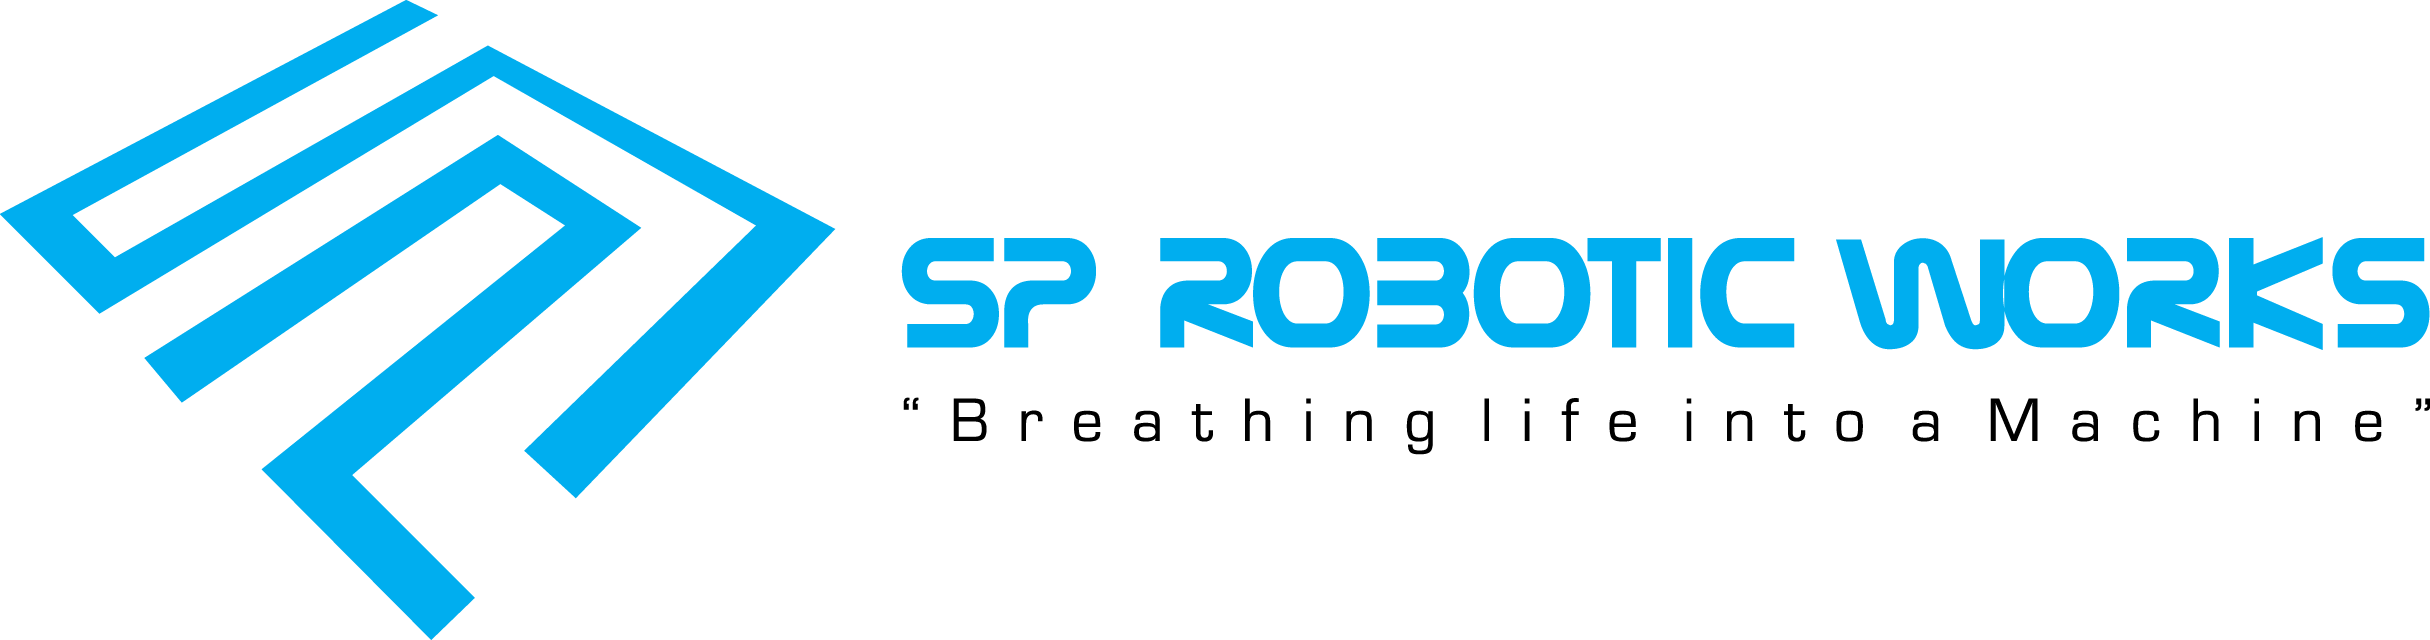 SP Robotic Works